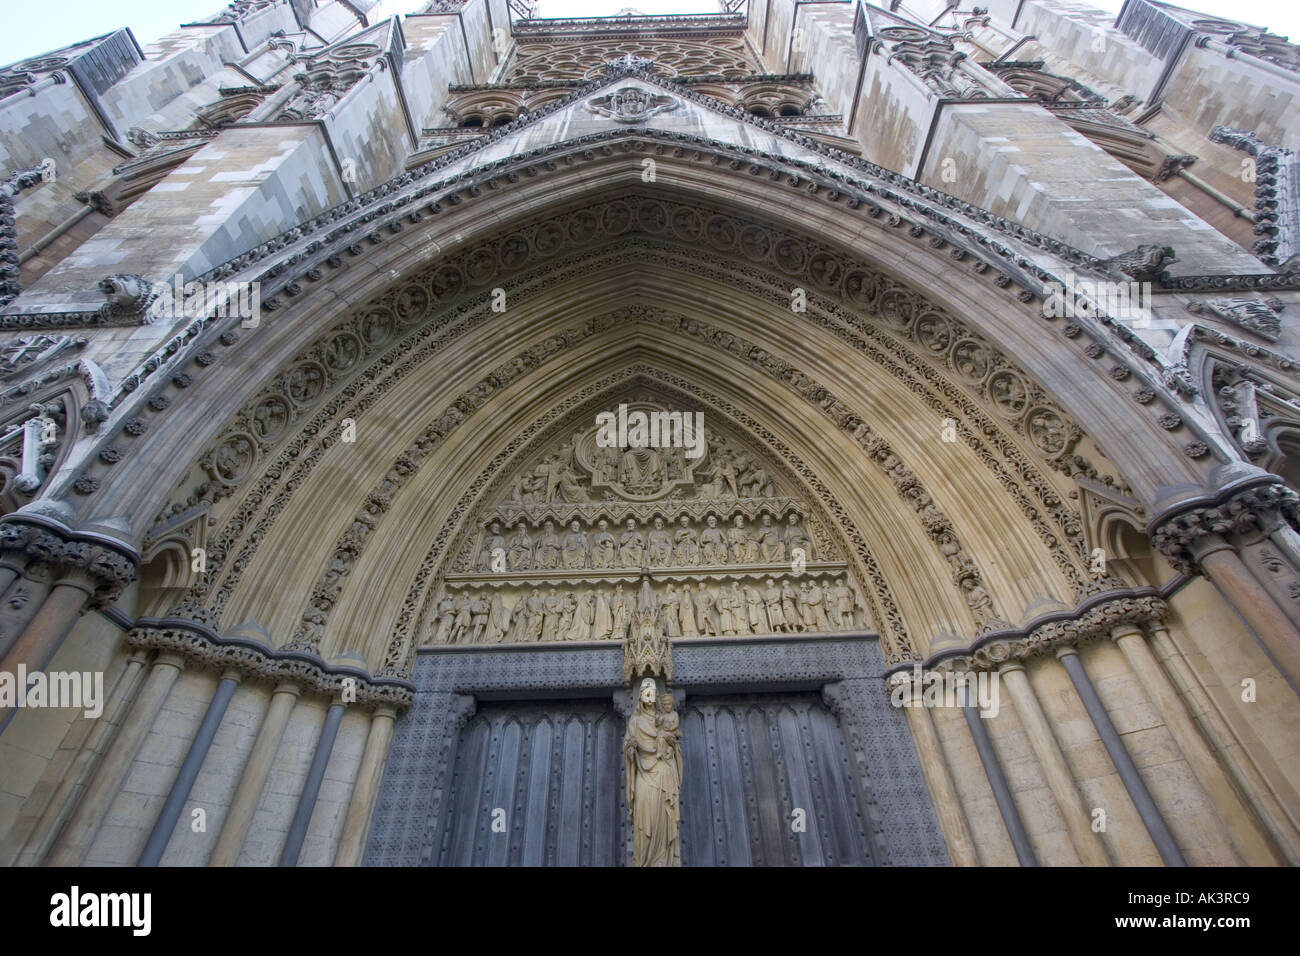 Doors to Westminster Abbey London England GB UK EU & Doors to Westminster Abbey London England GB UK EU Stock Photo ... pezcame.com